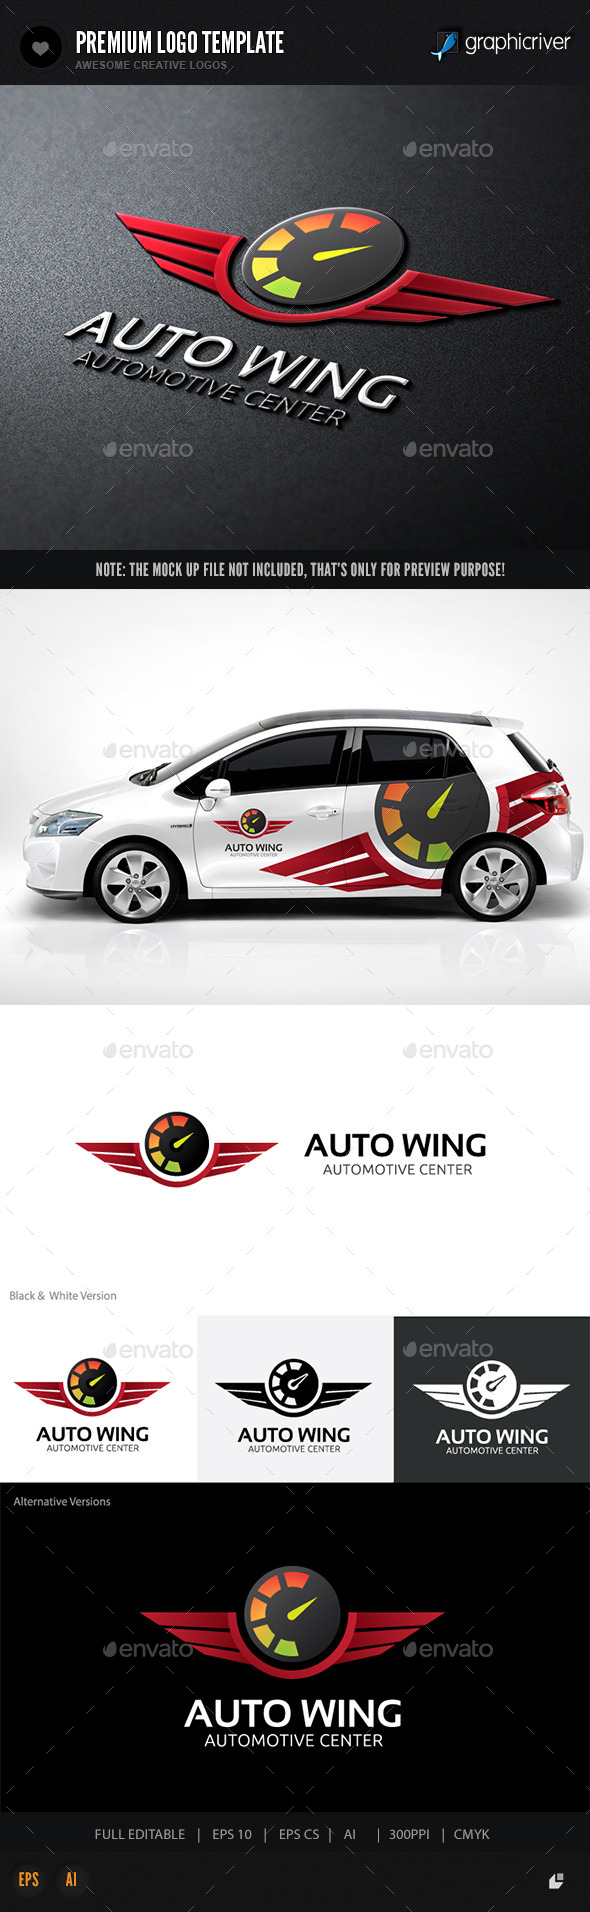 GraphicRiver Auto Wing 10715574